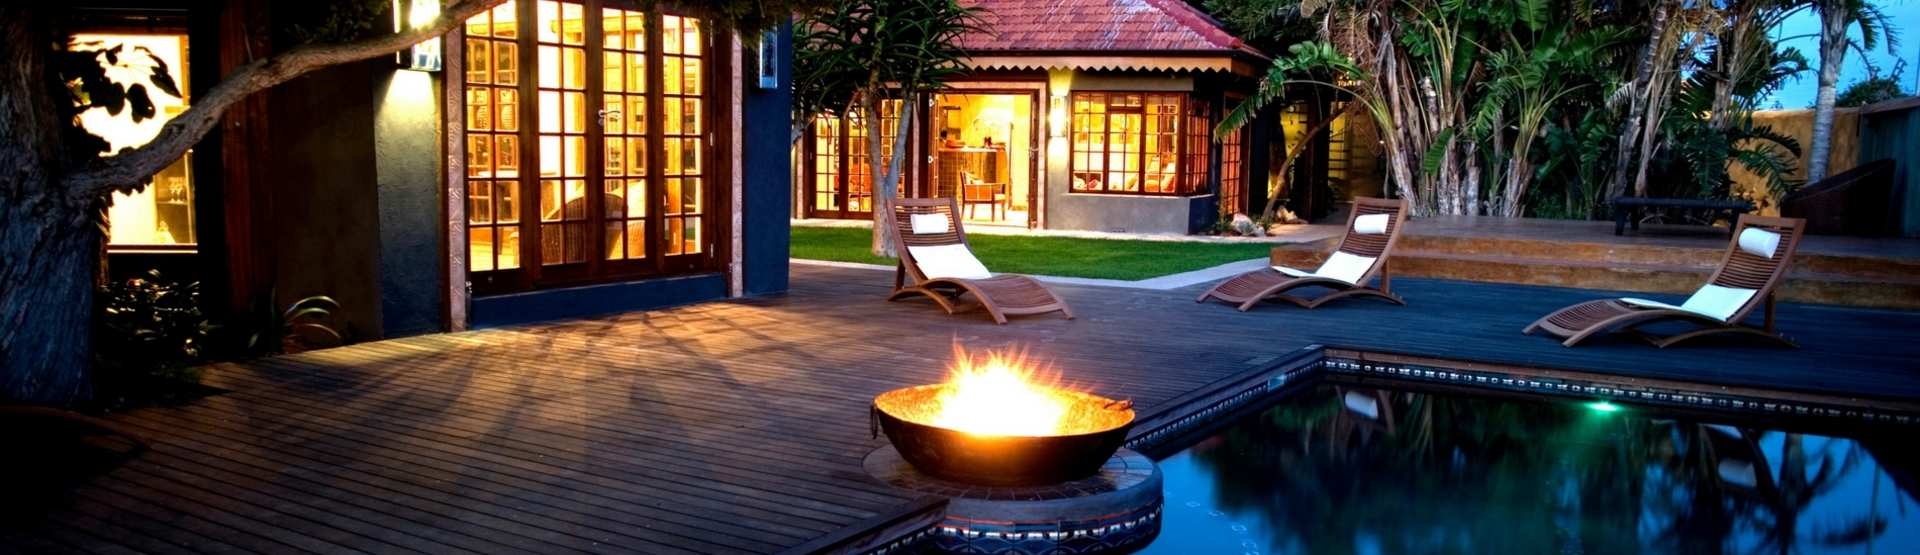 Singa Town Lodge Luxury Accommodation Port Elizabeth Evenings